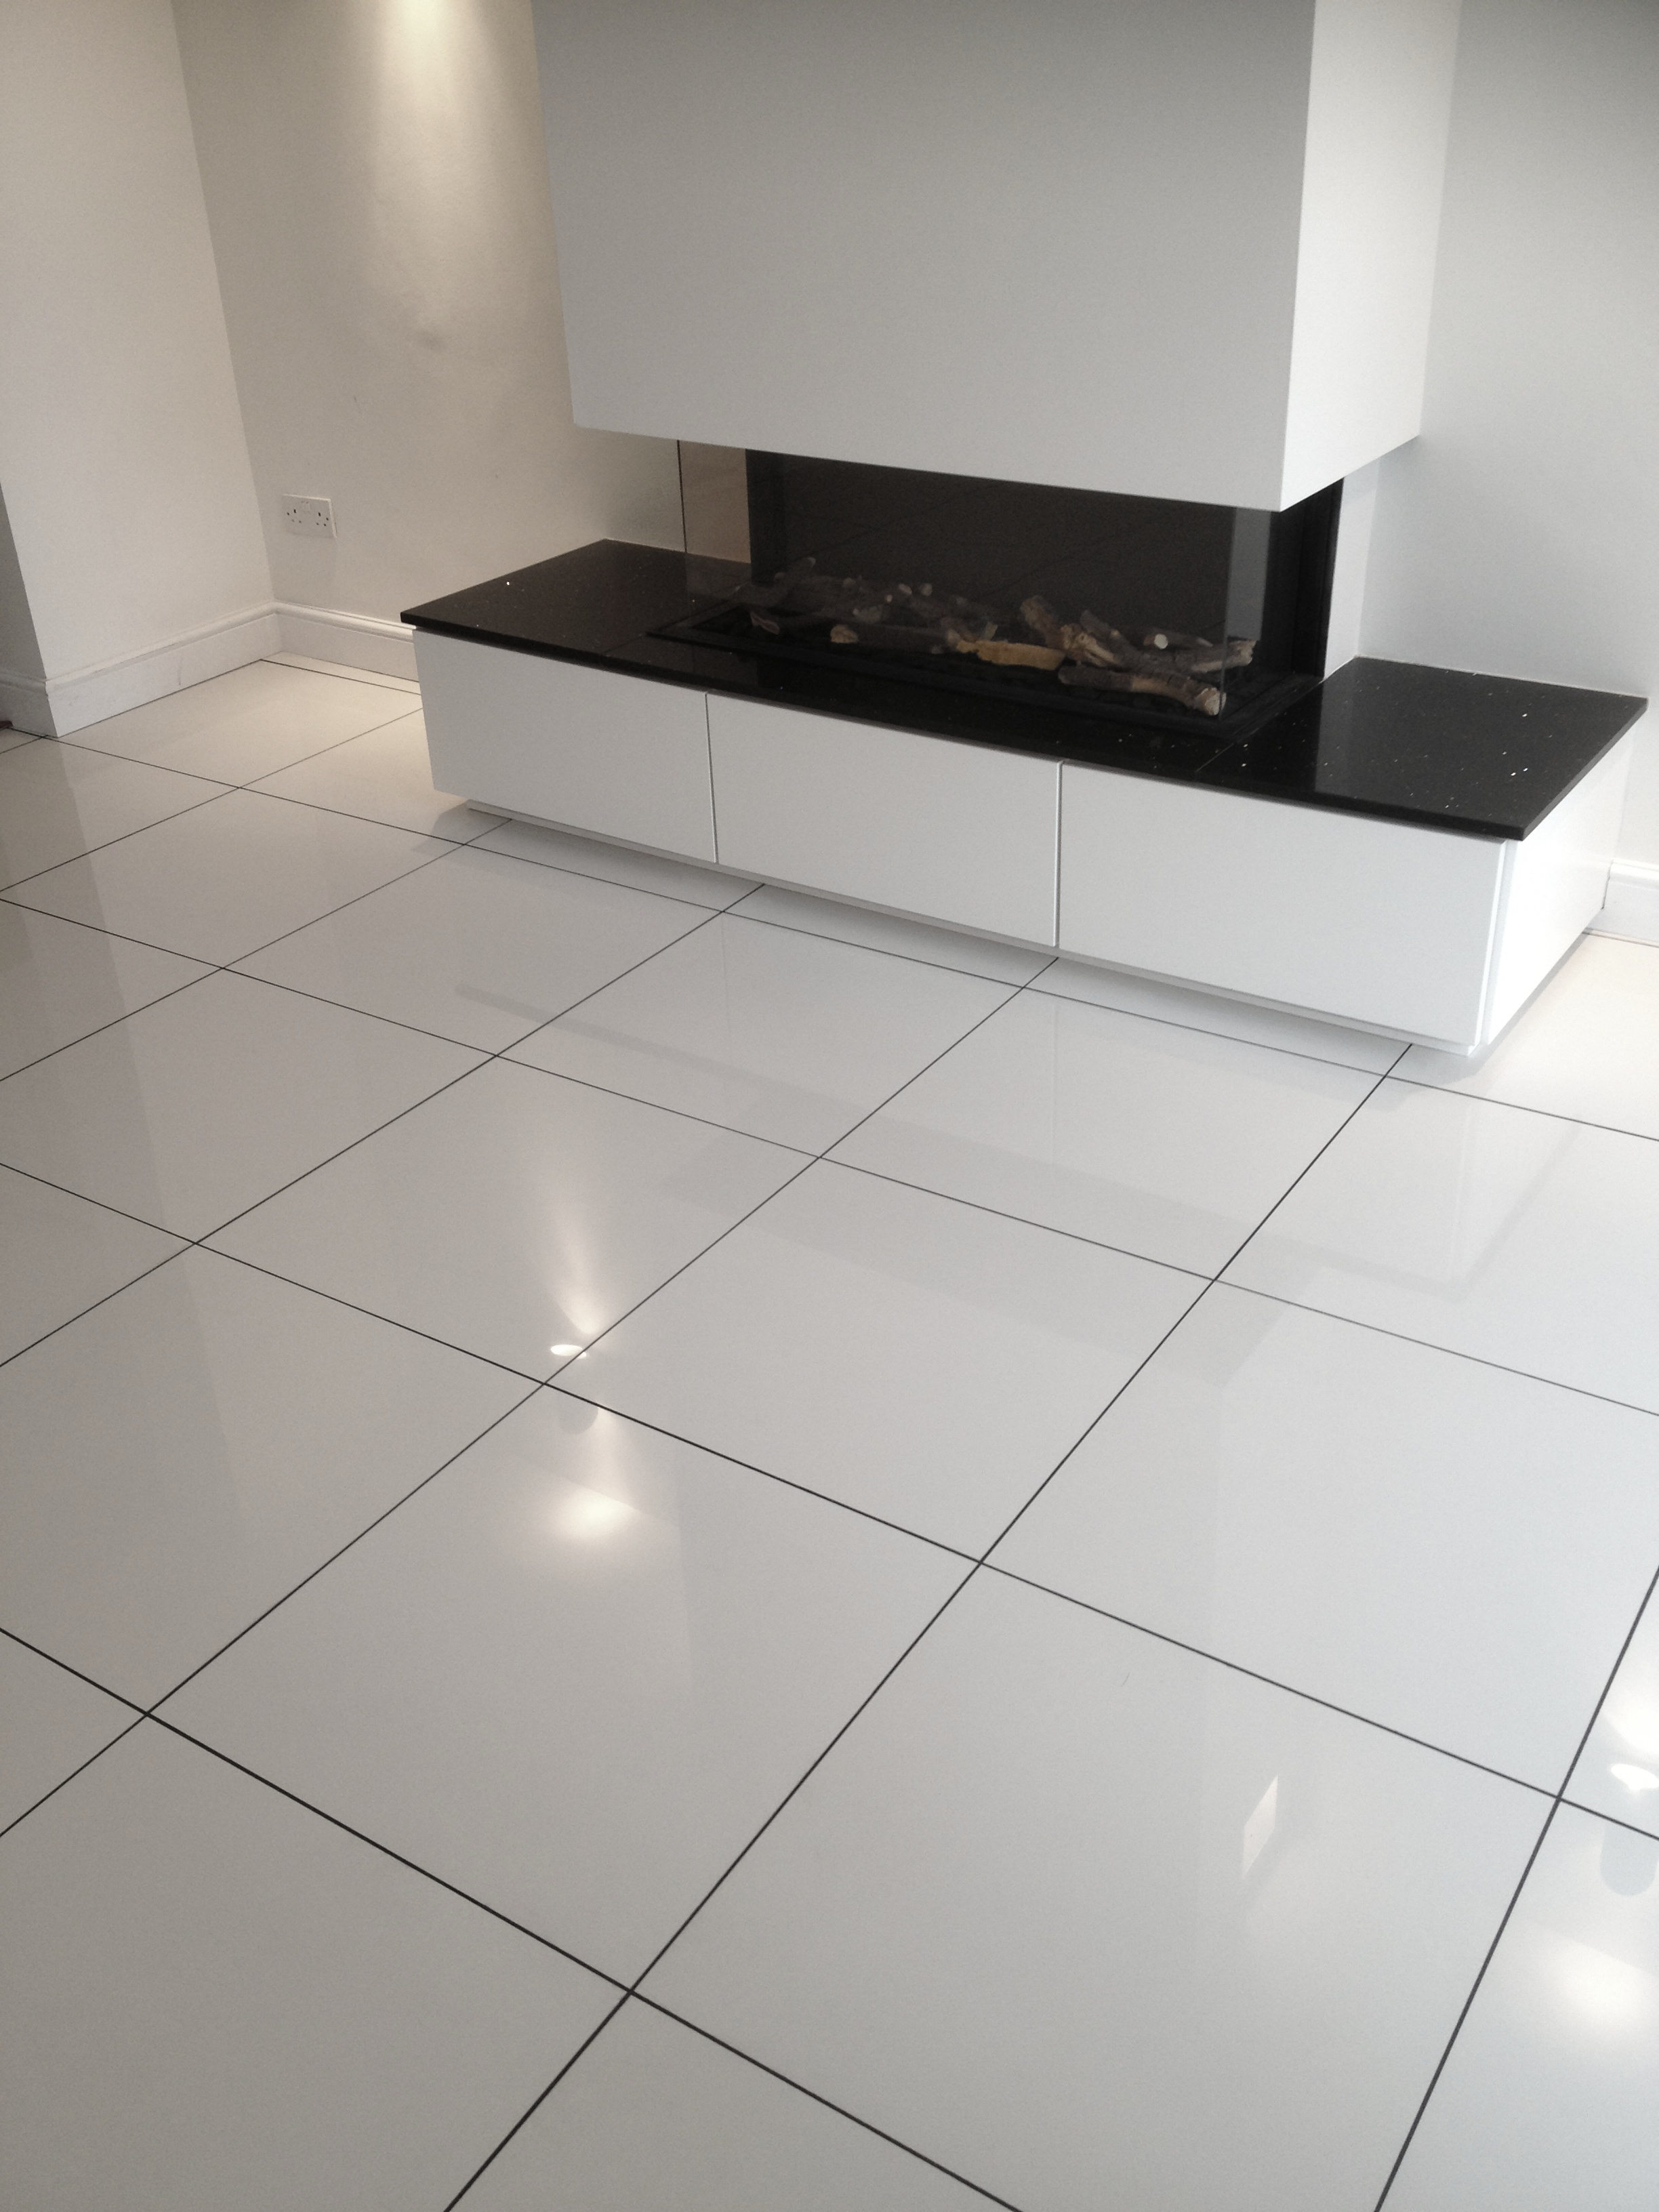 White Porcelain Floor Tile renovate your flooring with porcelaintiles and earn the shine under your feet for many years Style Selections Calacatta White Porcelain Floor And Wall Tile Common